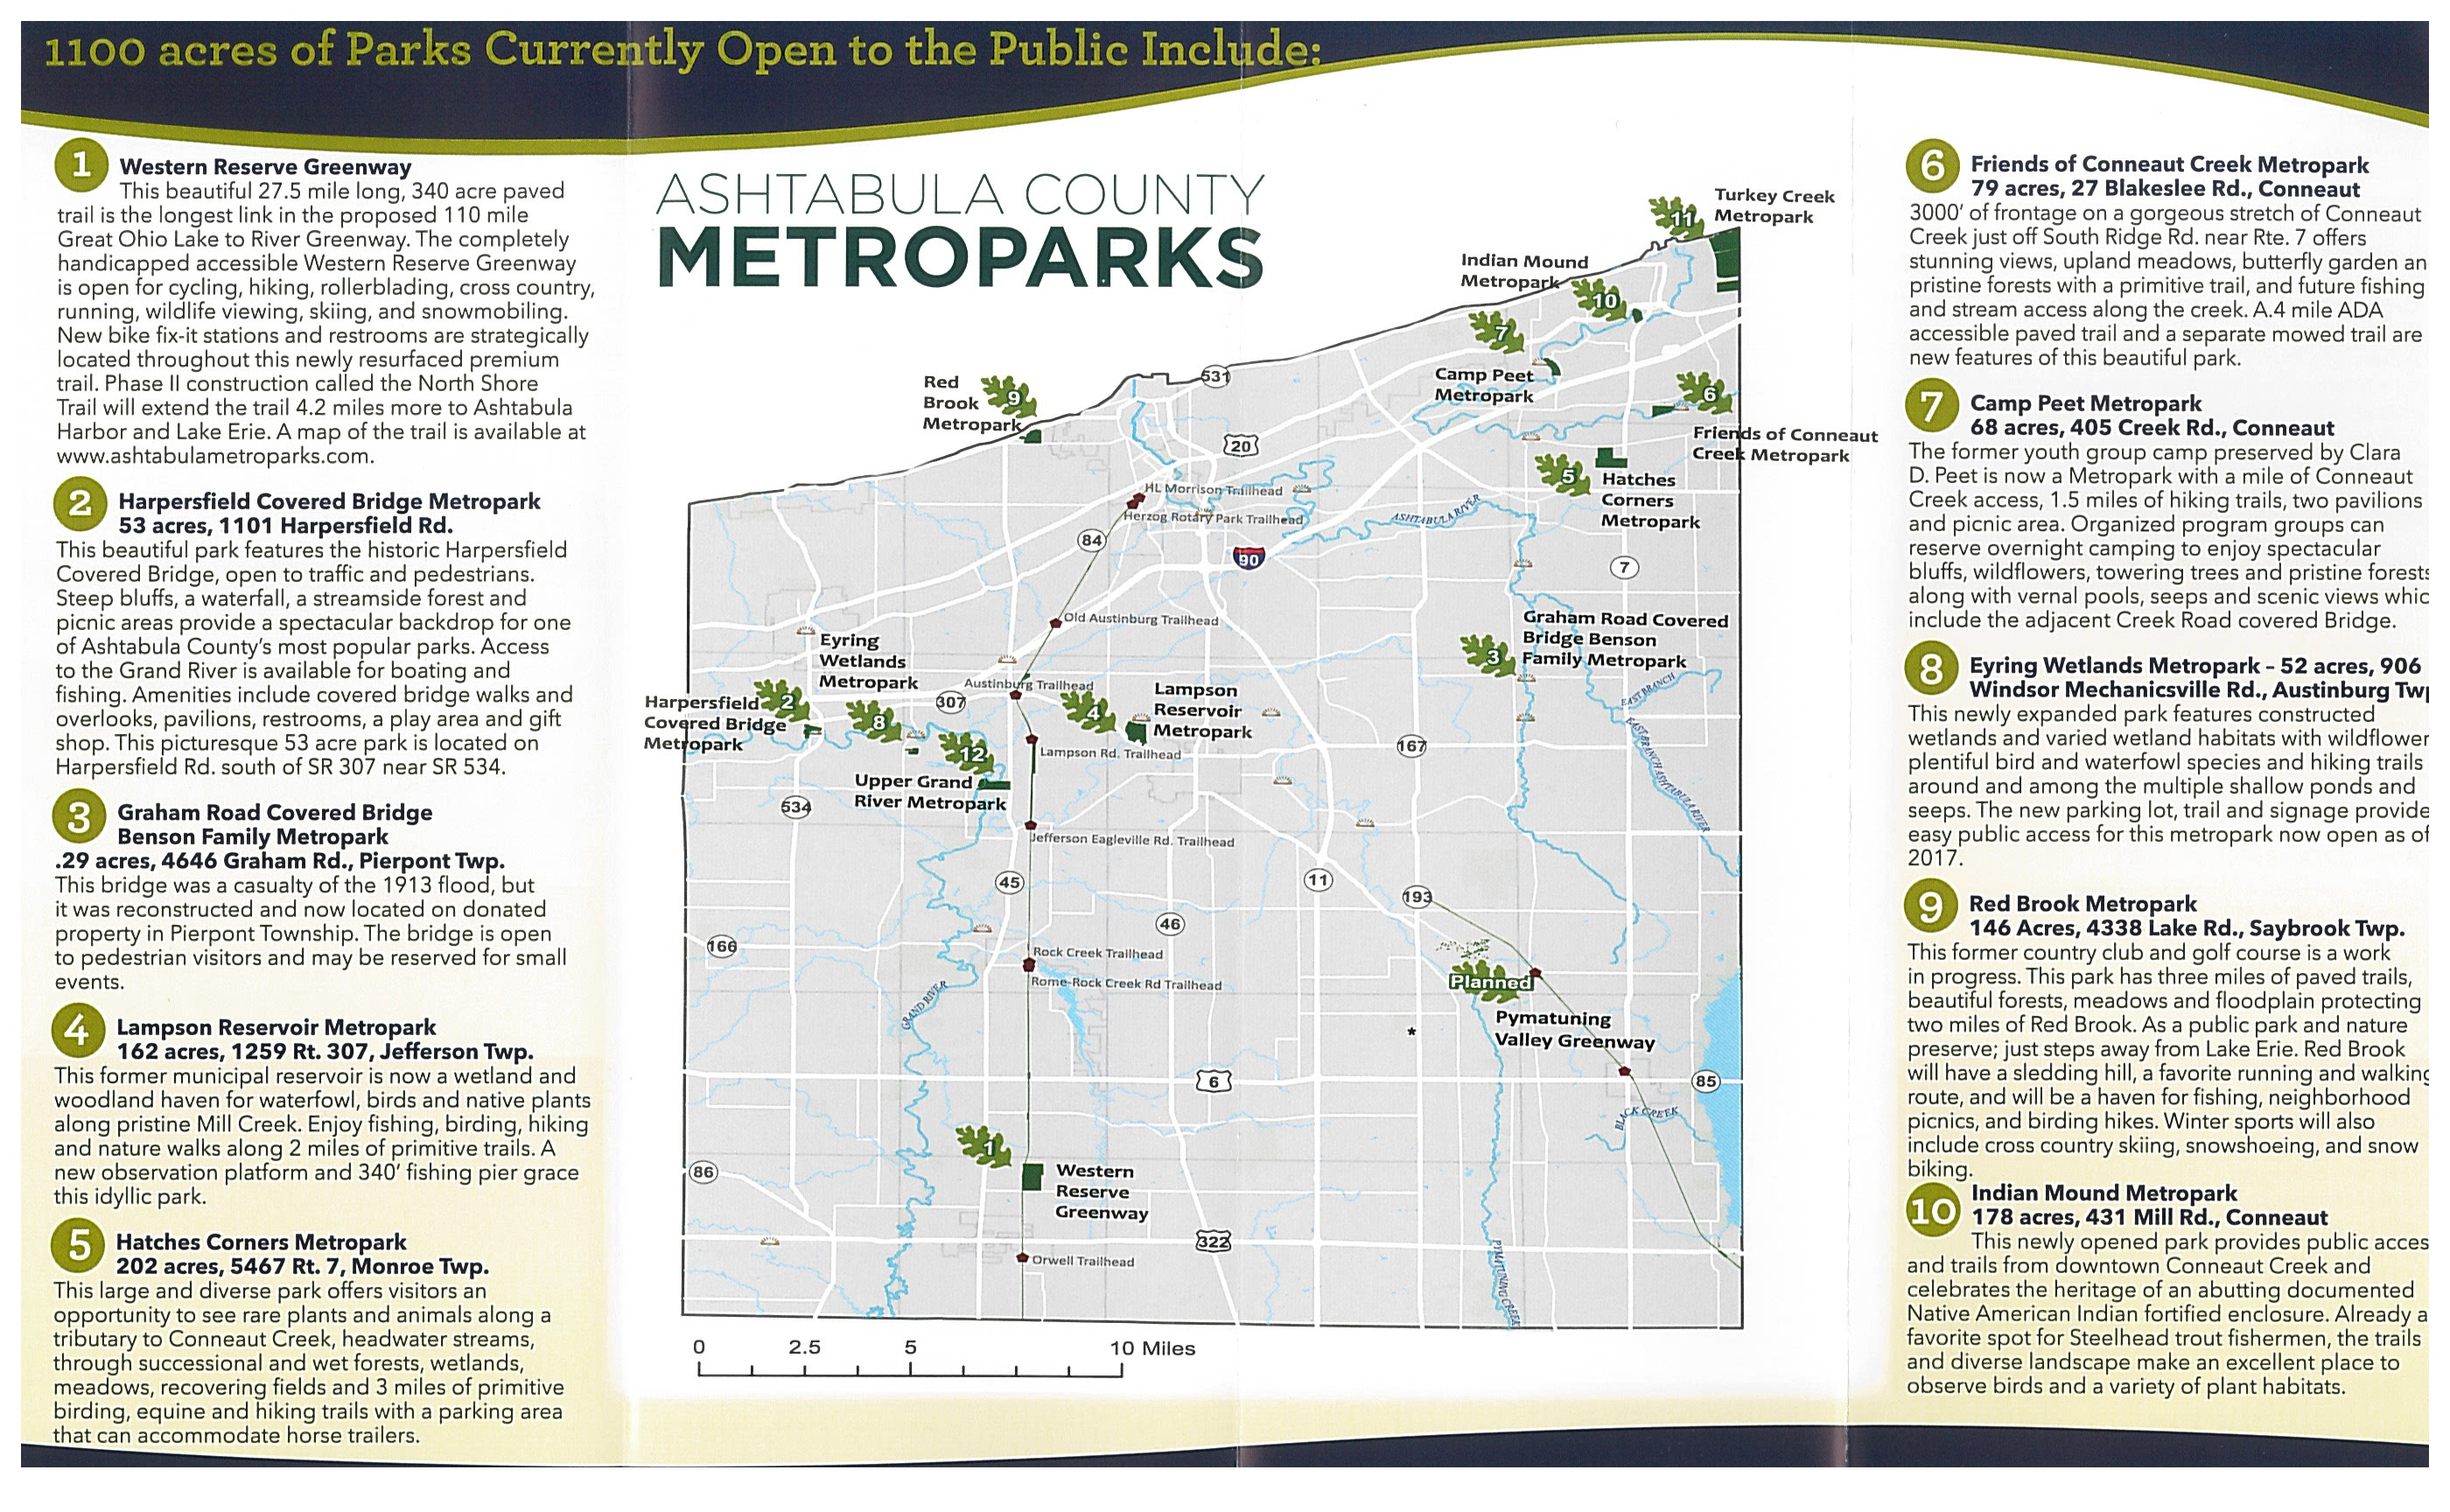 map of location of county metroparks